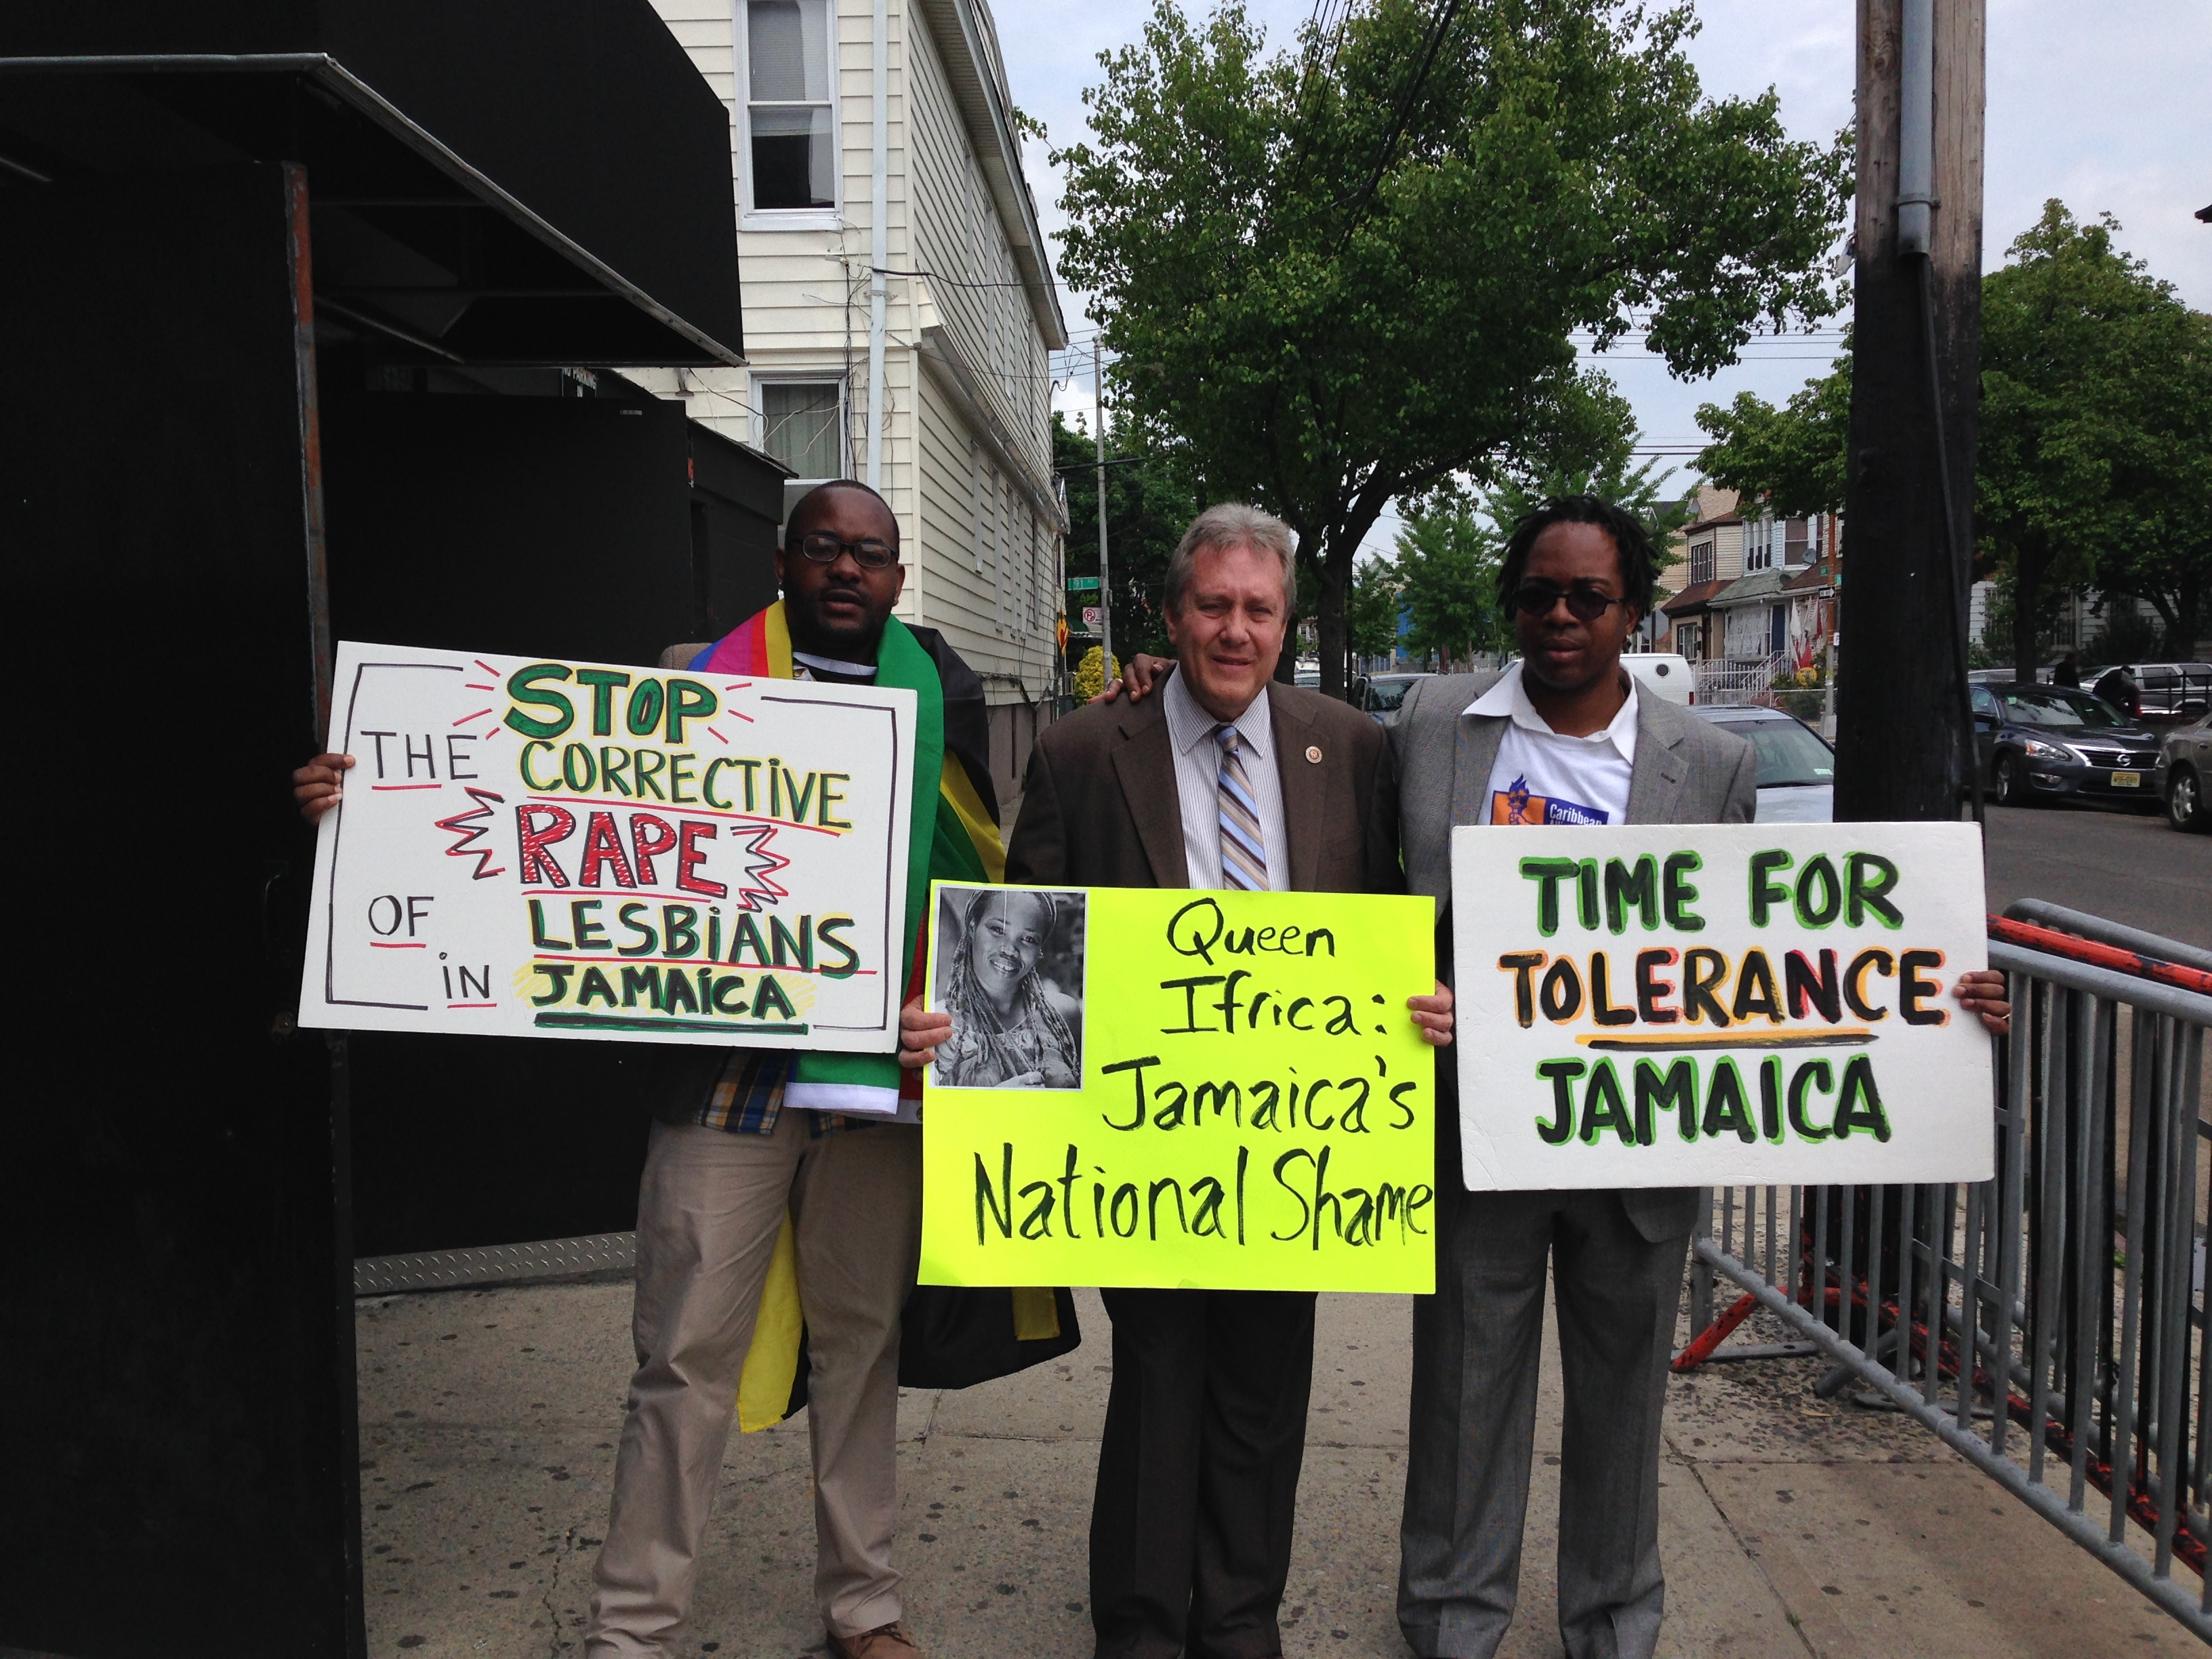 Councilman Daniel Dromm at the protest with Jamaica Anti-Homophobia leaders (Photo: Paula Duran)